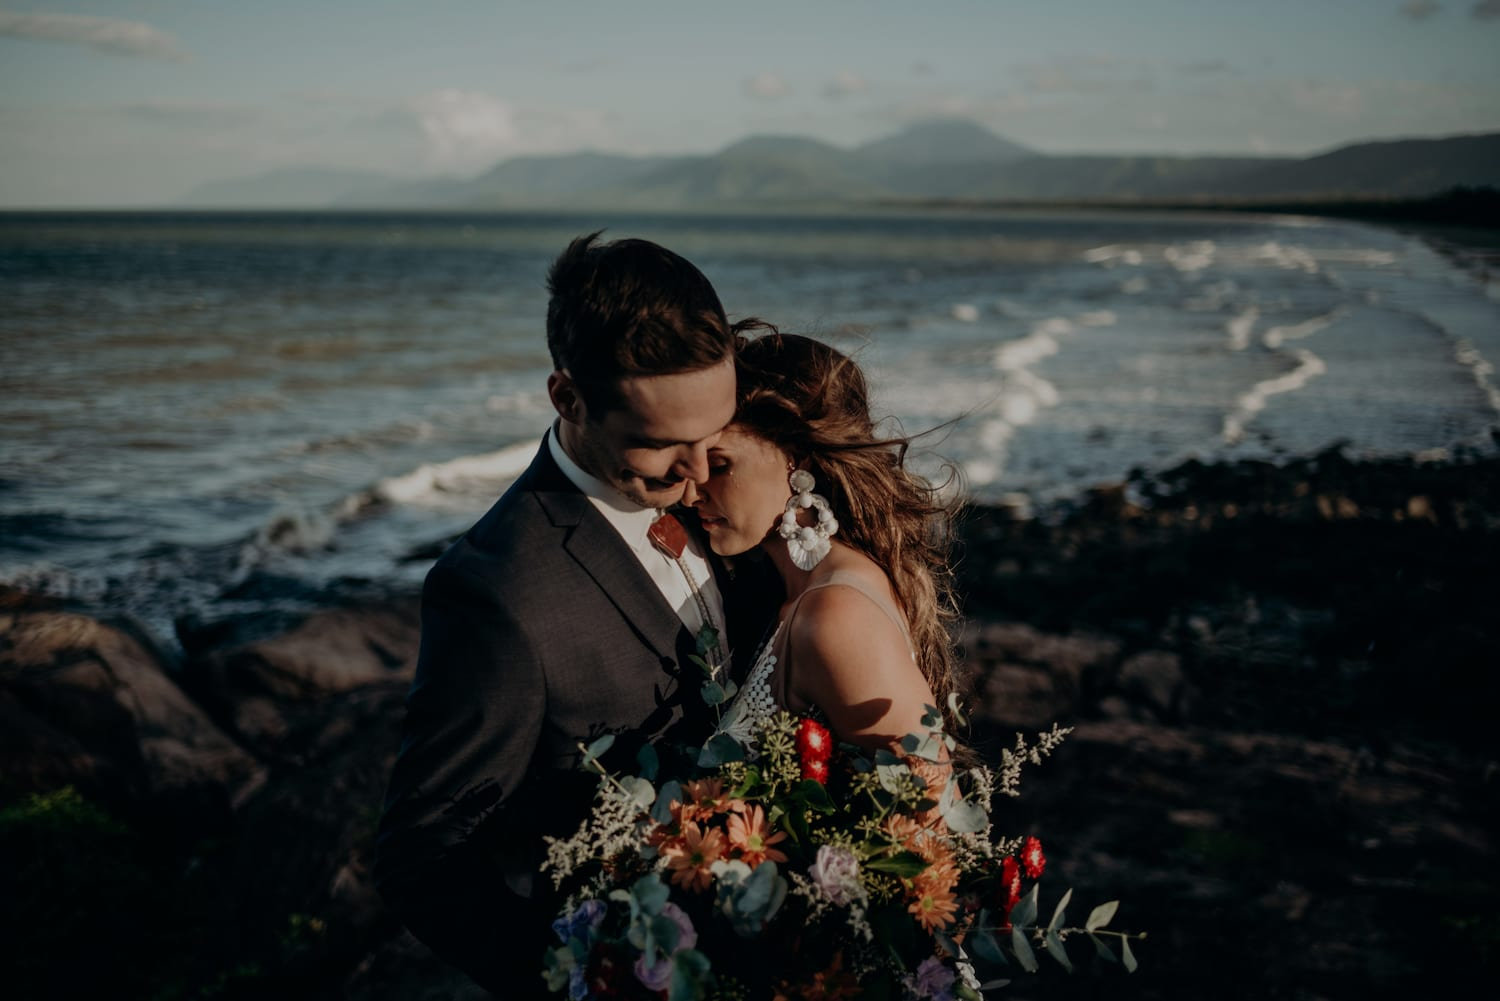 newlyweds embracing port douglas beach